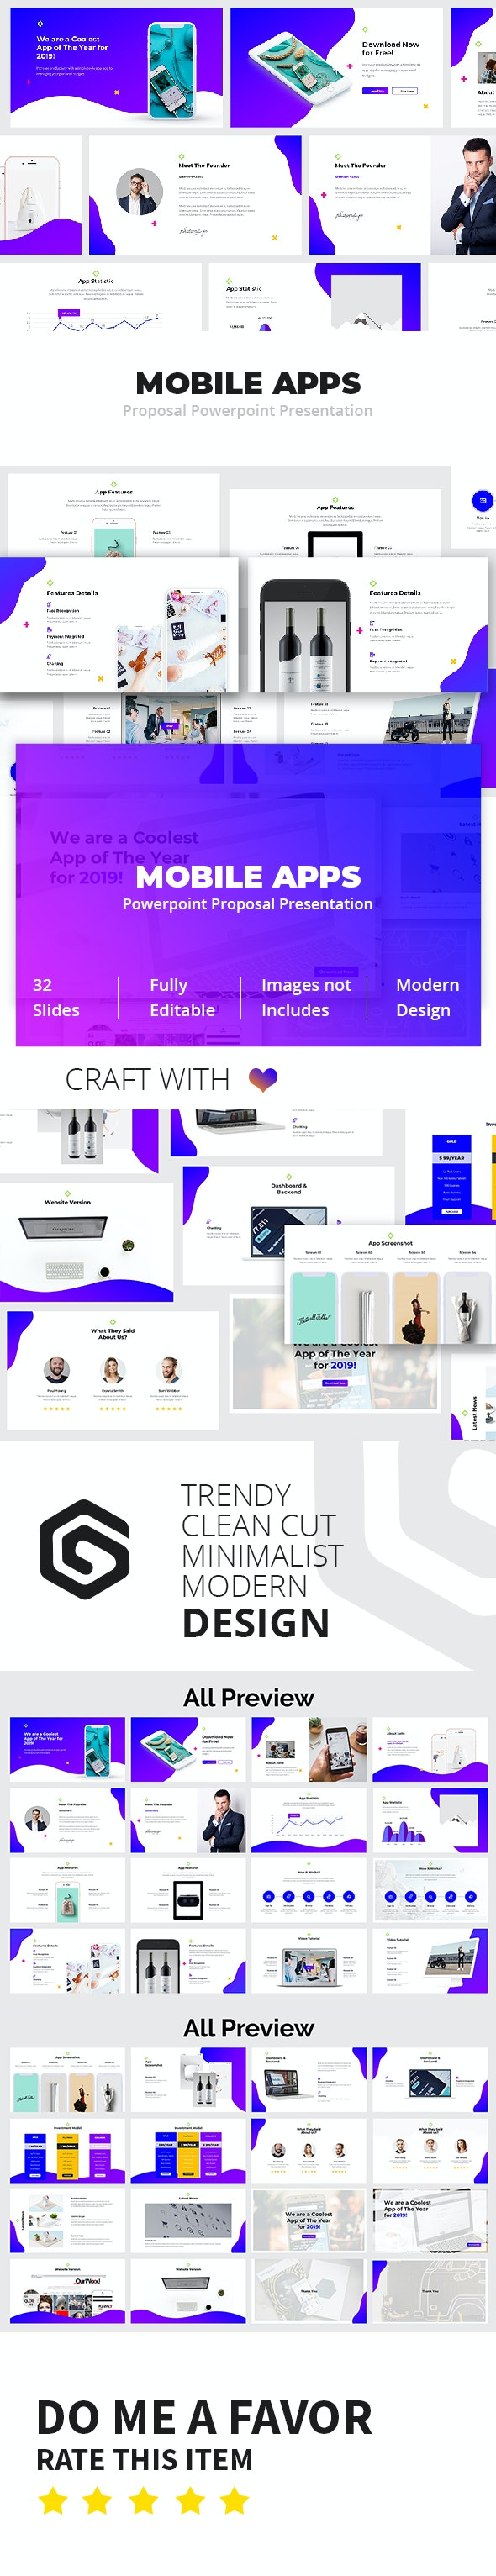 Mobile App Powerpoint Proposal Presentation Template - Pitch Deck PowerPoint Templates